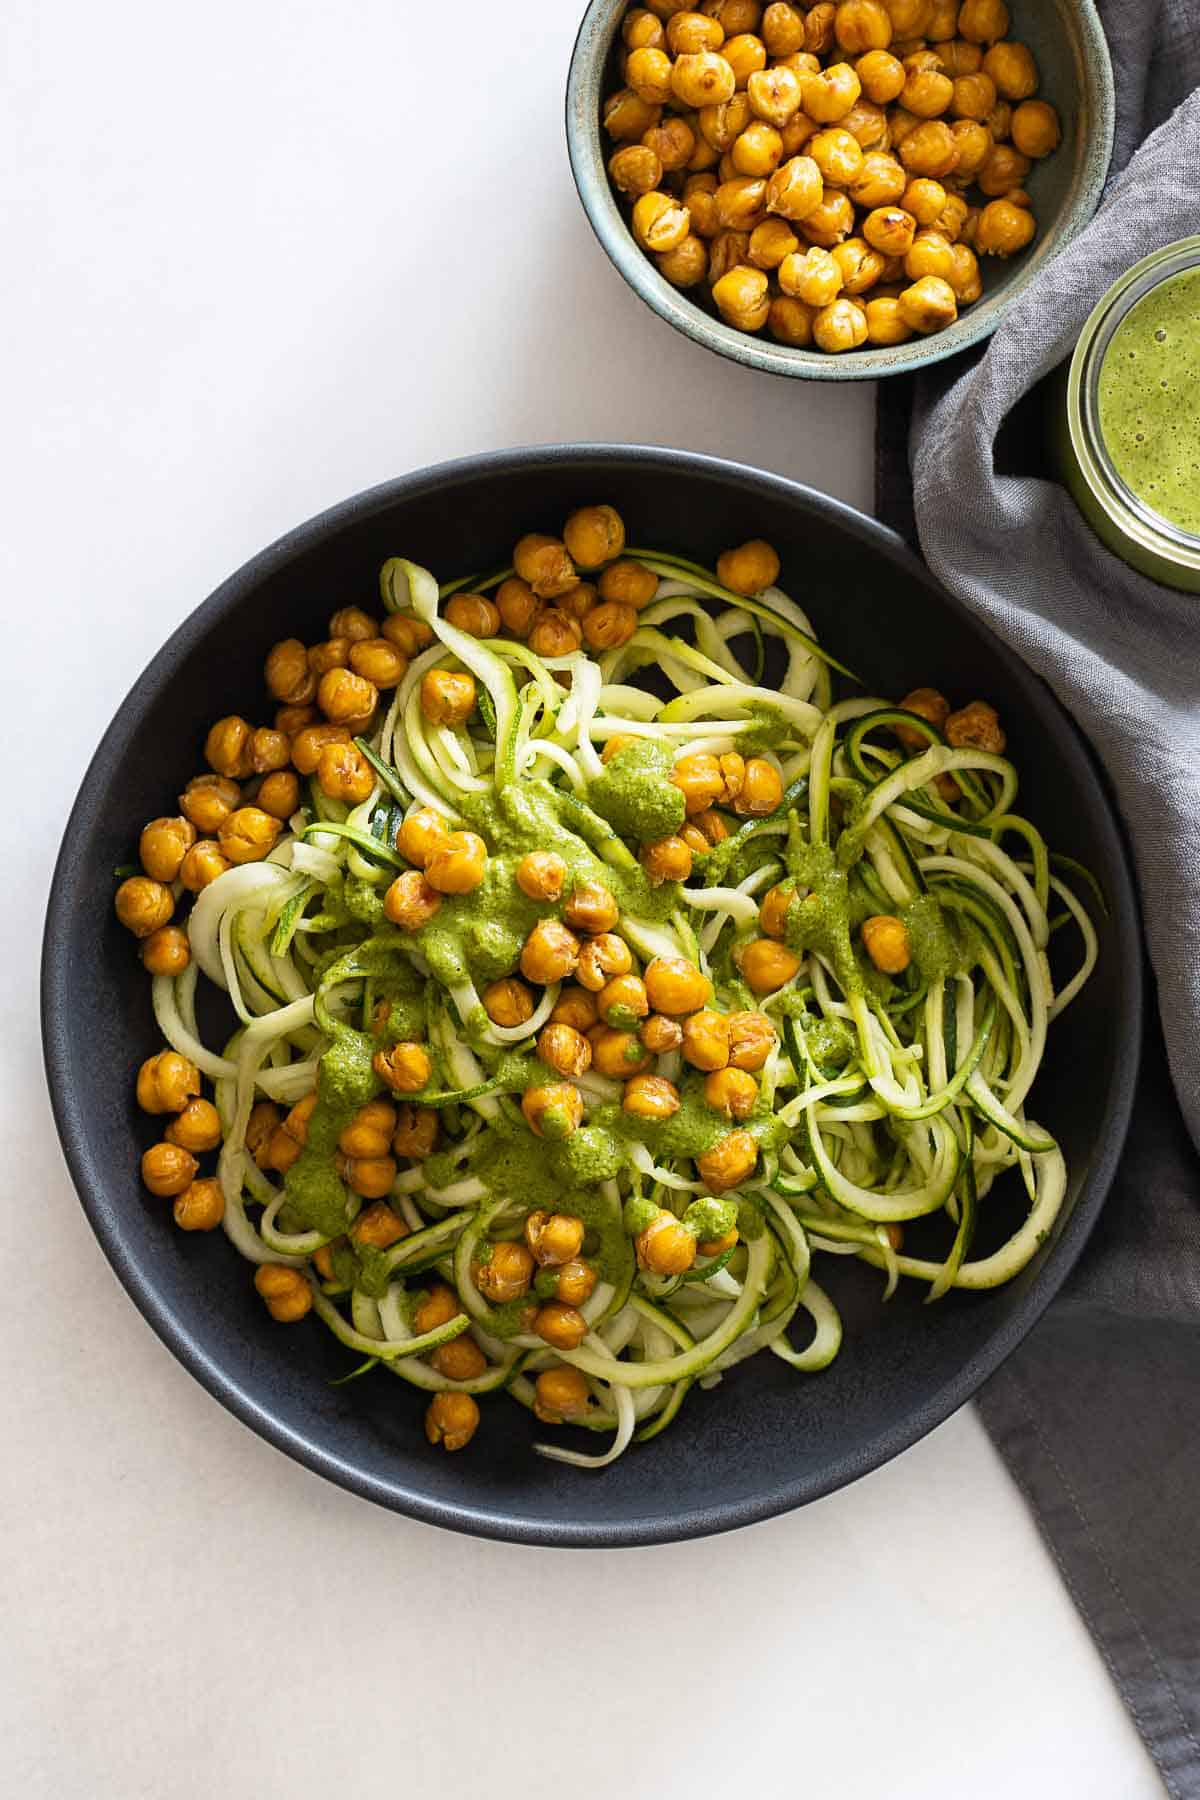 Zucchini noodles topped with crispy chickpeas and herb sauce.